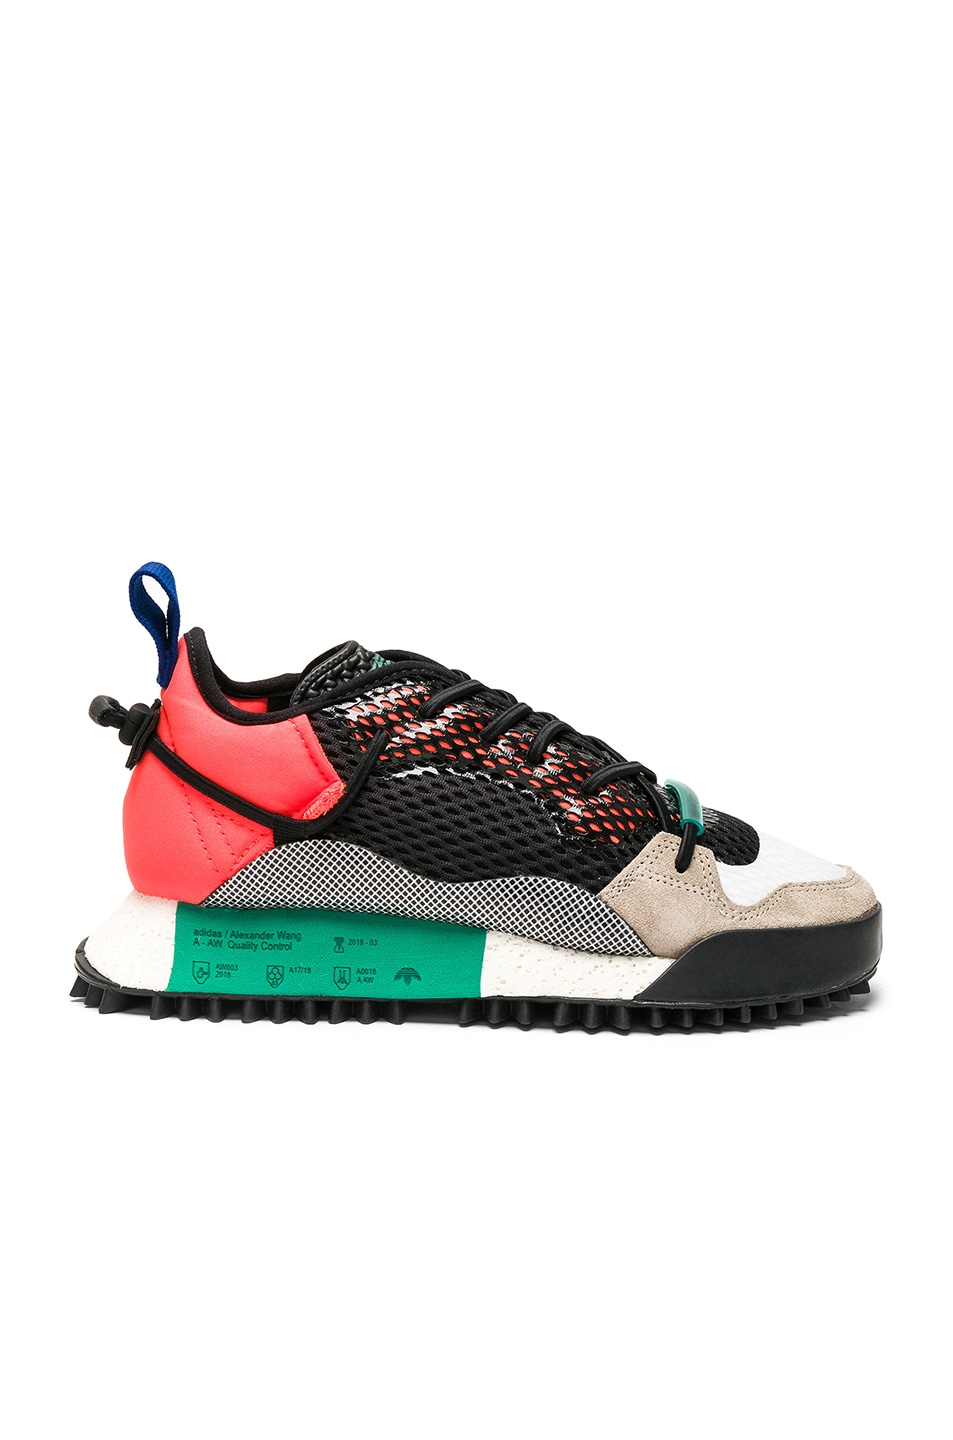 Image 1 of adidas by Alexander Wang Reissue Run Sneakers in Red, Black & Green